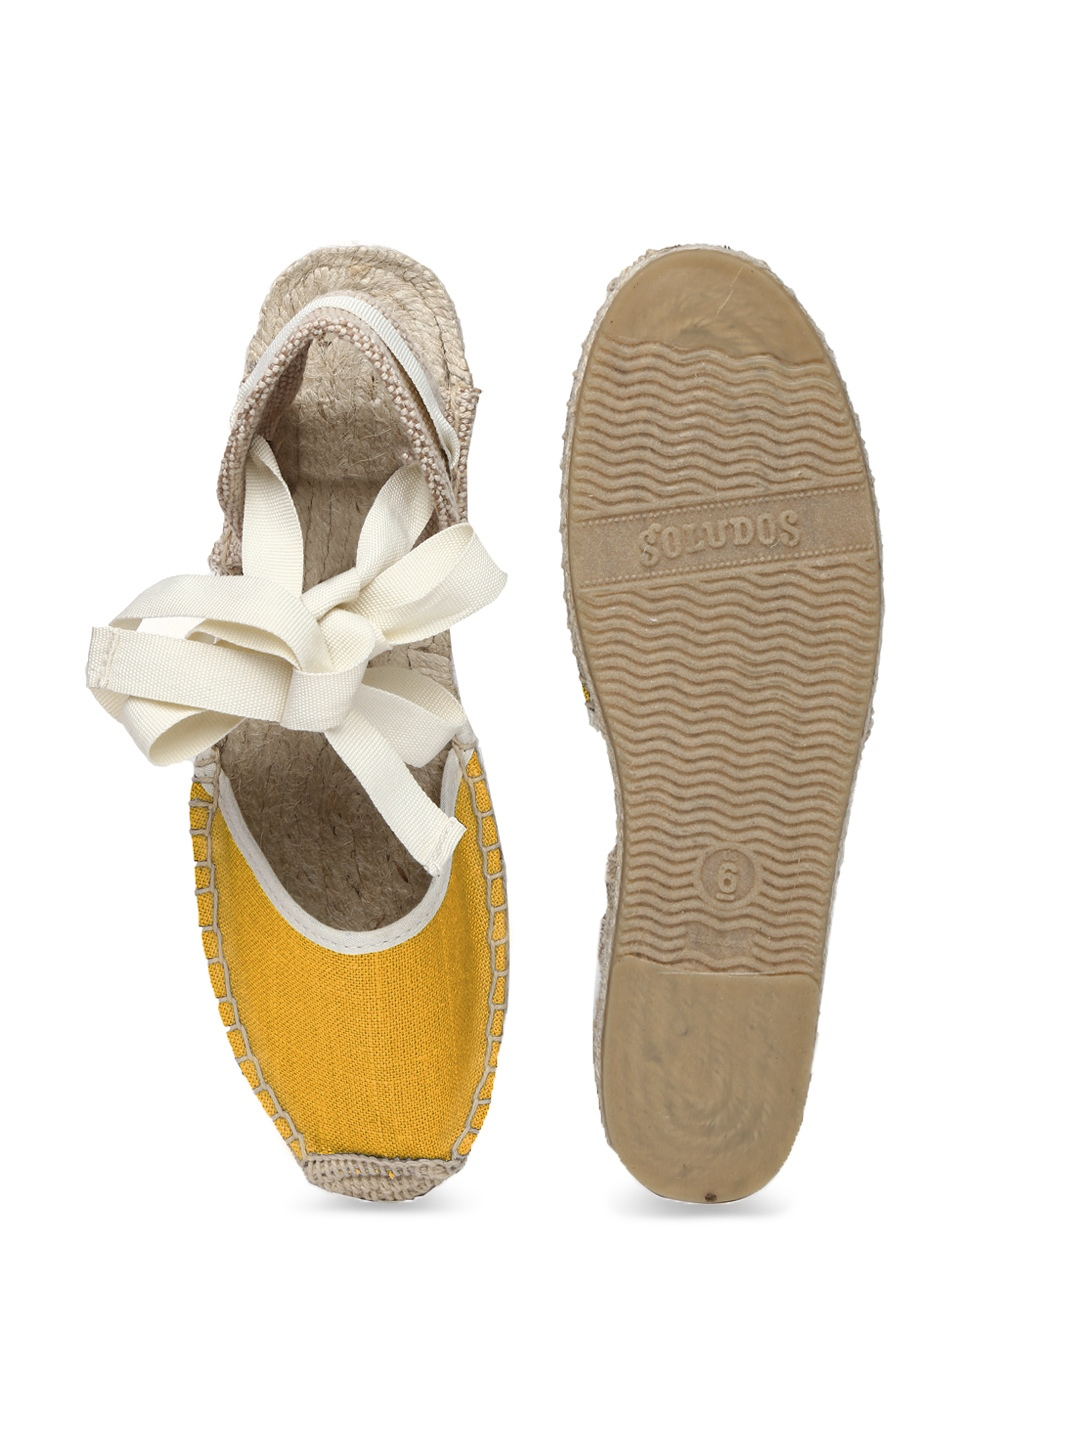 Find a great selection of women's espadrilles at believed-entrepreneur.ml by Soludos, Tory Burch, Sam Edelman and more. Shop for espadrille flats, espadrille wedges, .